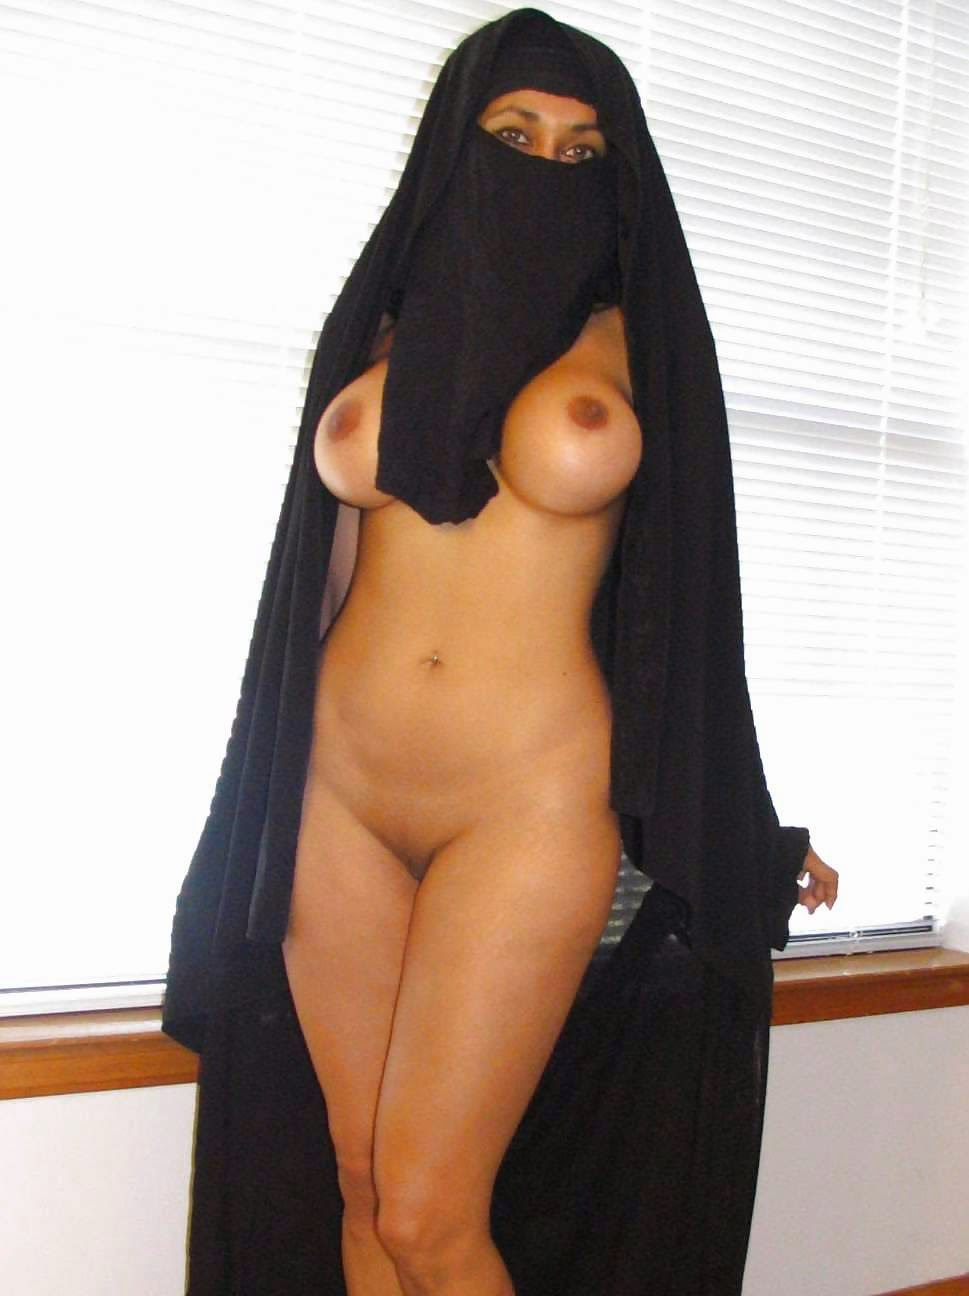 Arab Girls Boobs Pics